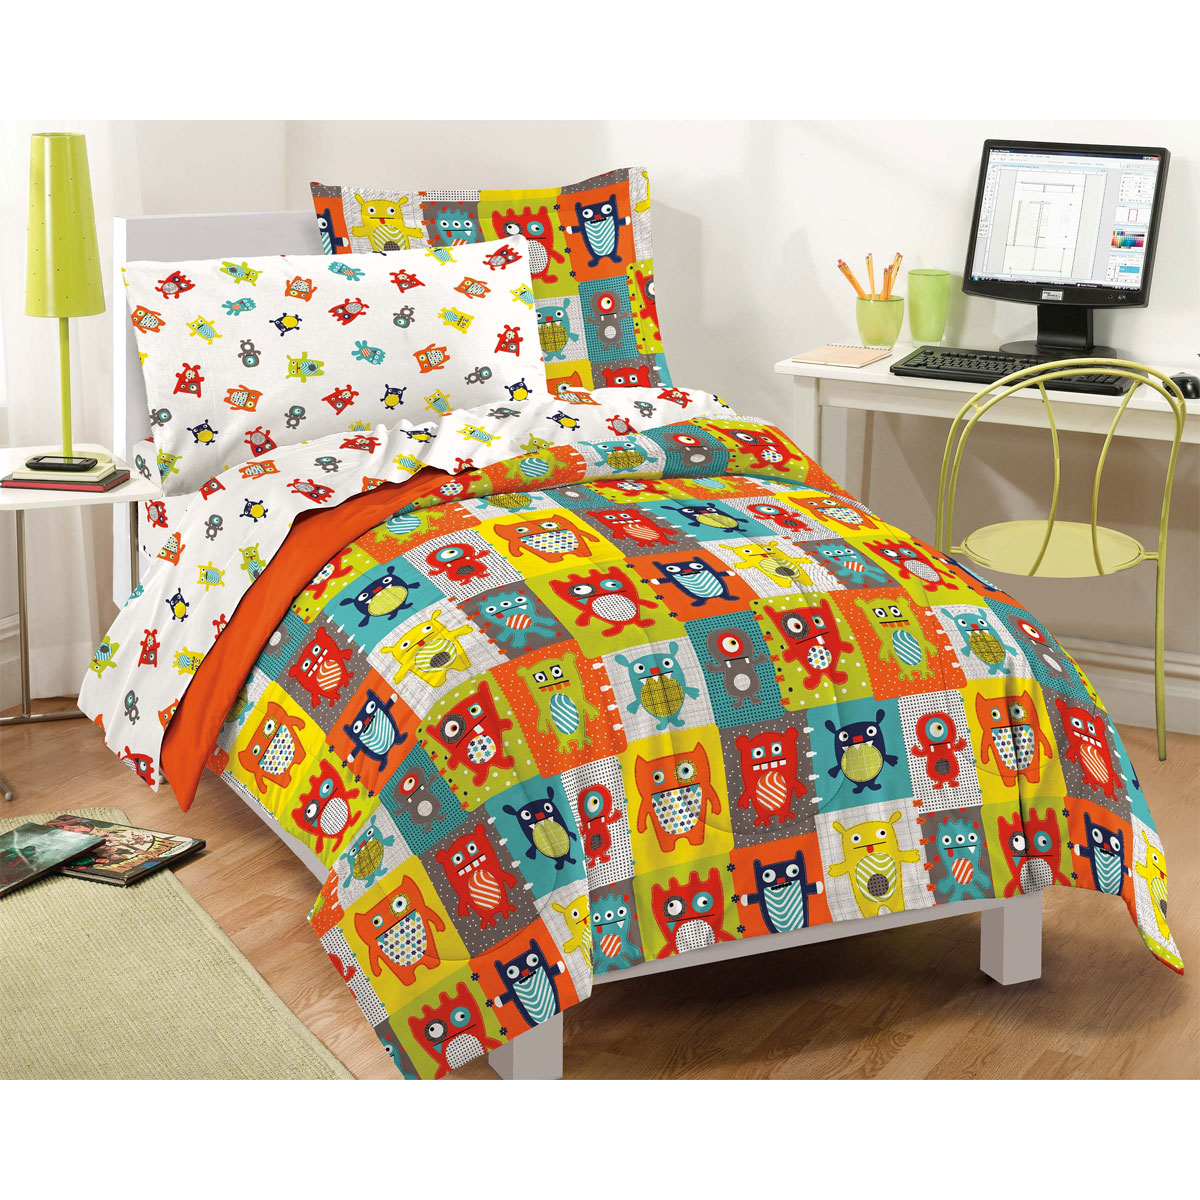 Bed Sheets For Twin Beds  Inches Thick